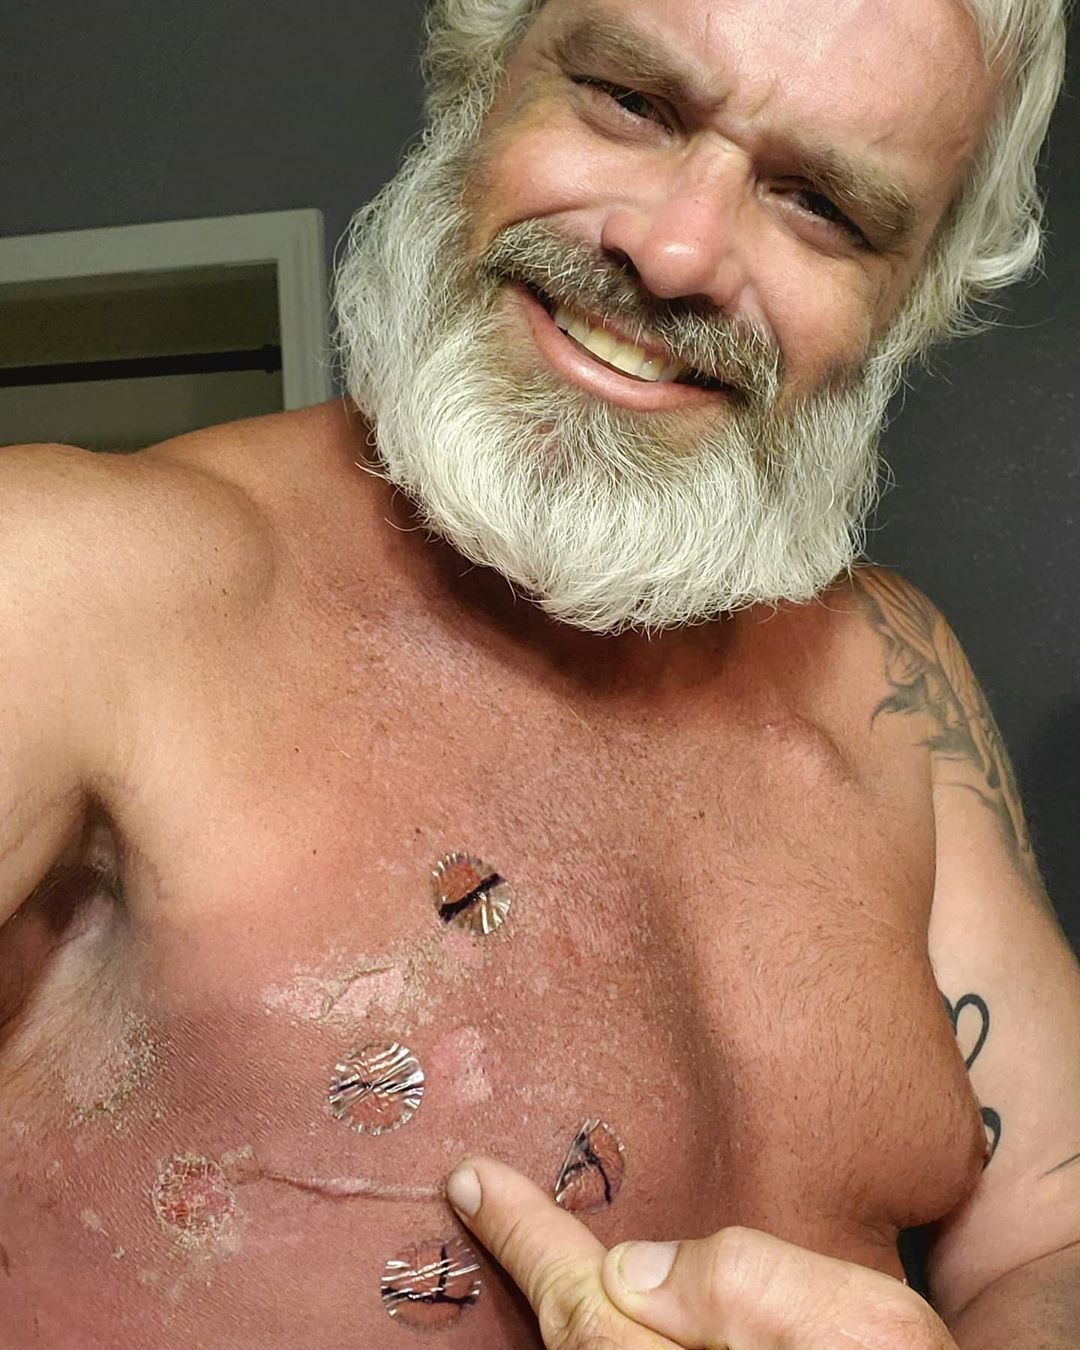 Our Warrior Wednesday spotlight, Zac Yarbrough, shows off his scars on his chest.